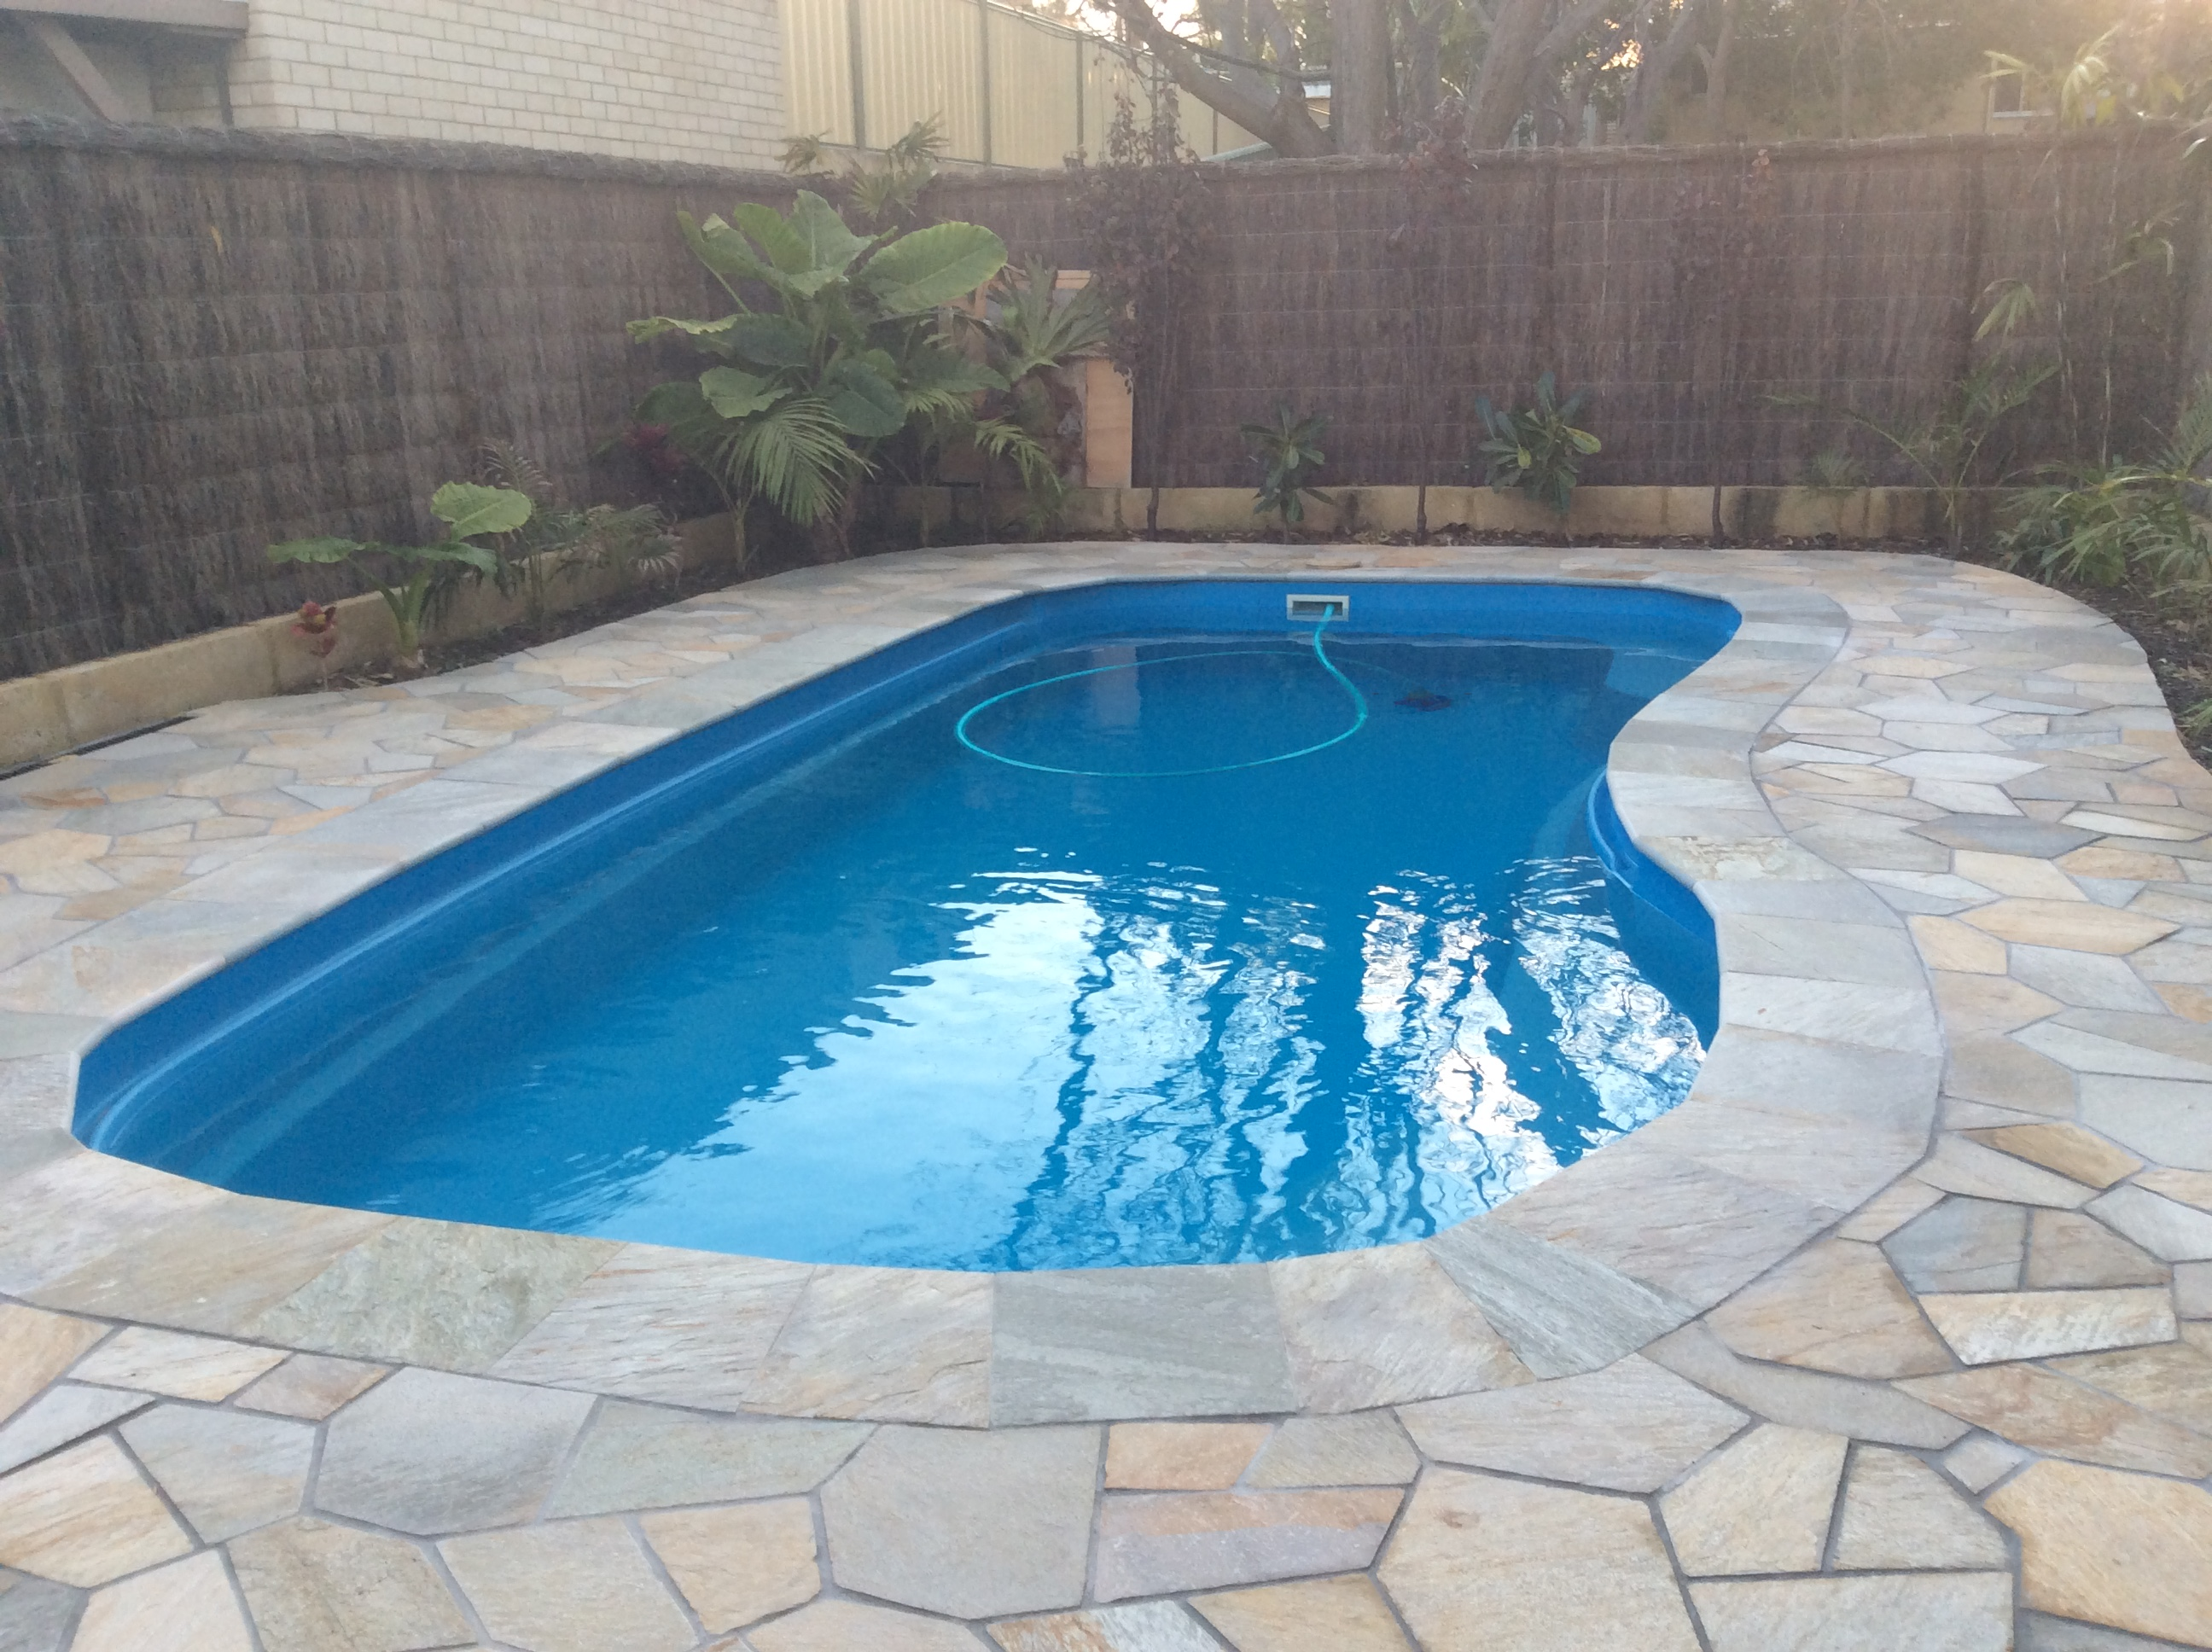 slate crazy pavers stone pavers perth natural stone paving